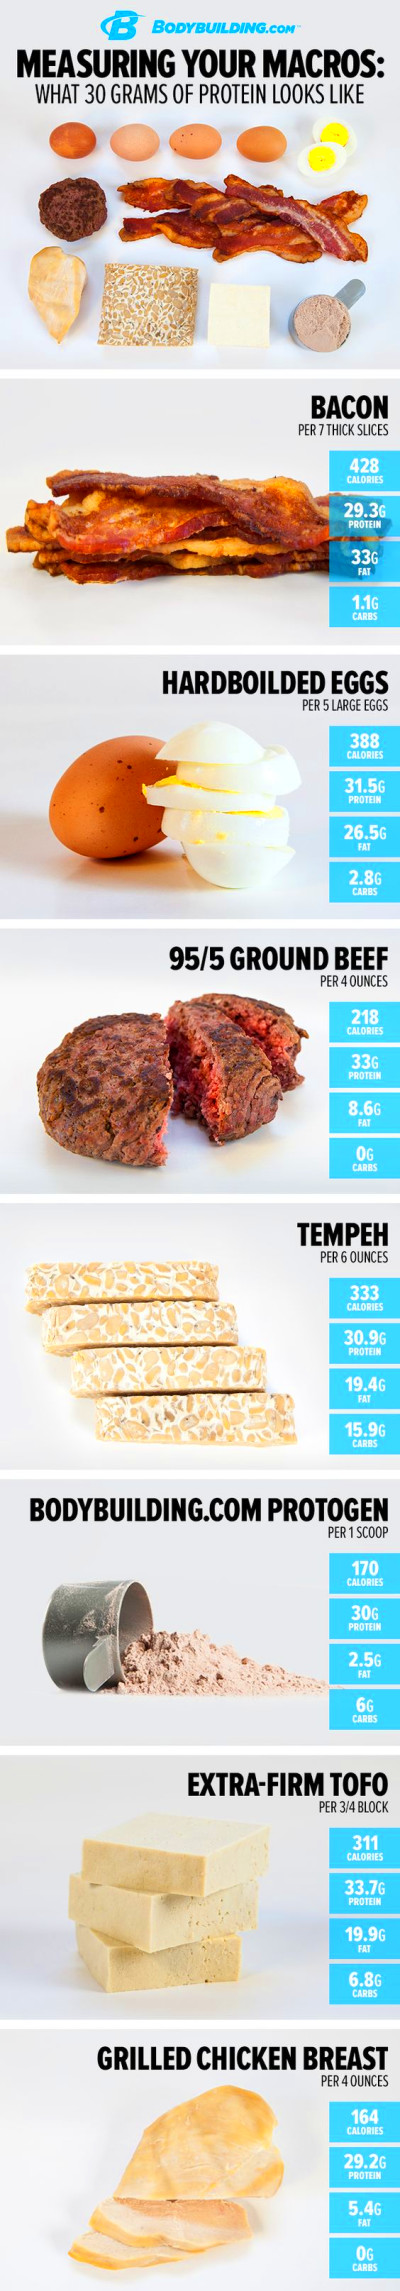 Measuring Your Macros: What 30 Grams of Protein Looks Like ...